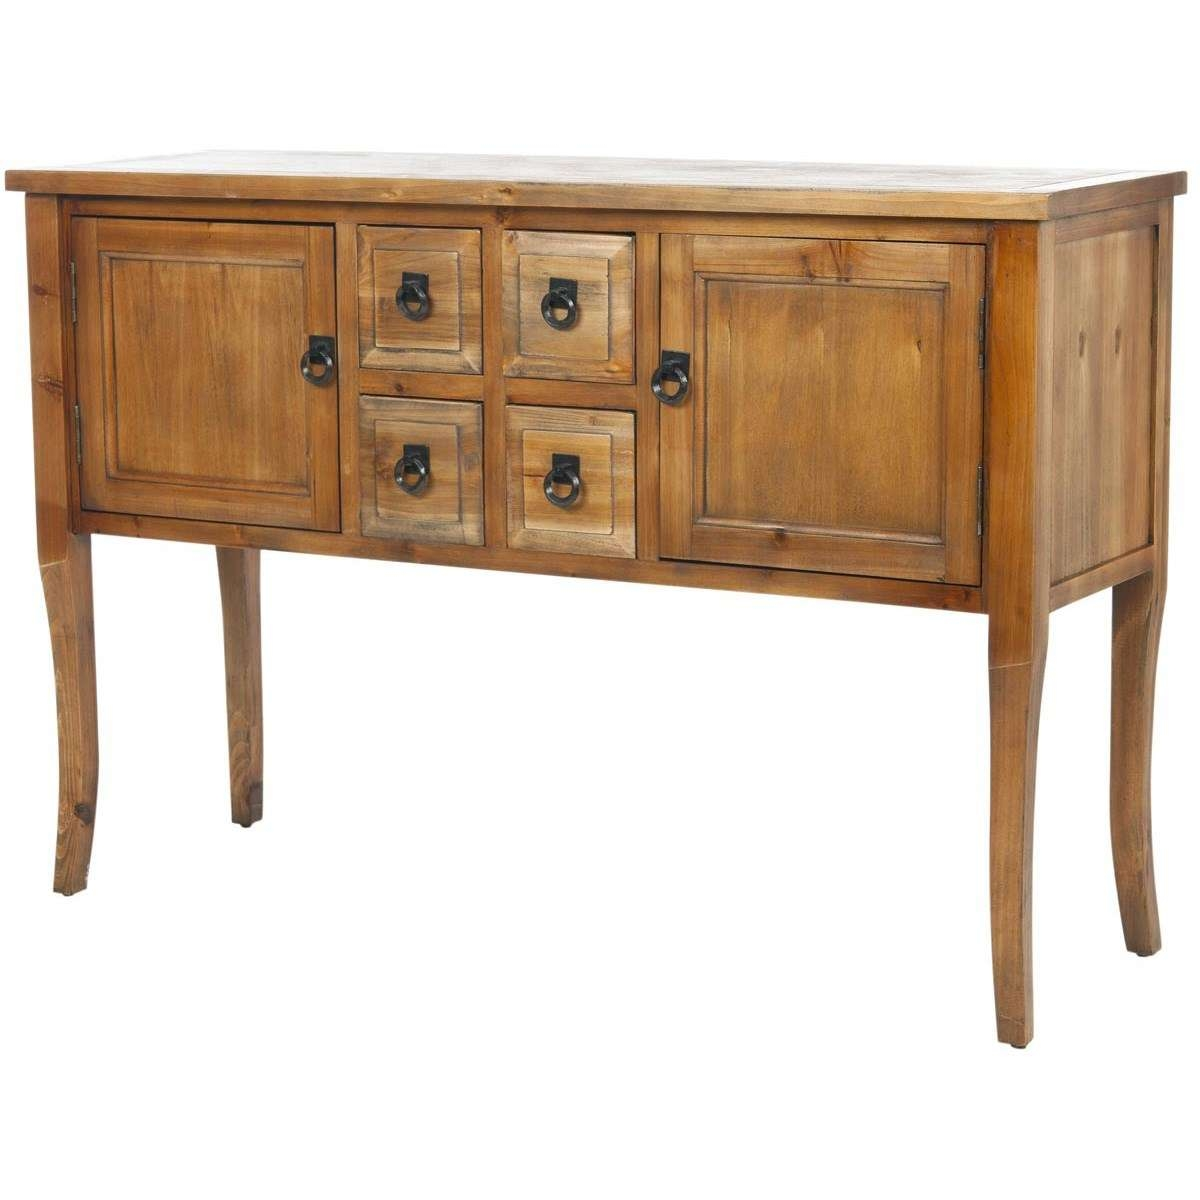 Safavieh Amh6563A Dolan Sideboard In Light Oak – Homeclick Throughout Safavieh Sideboards (View 10 of 20)